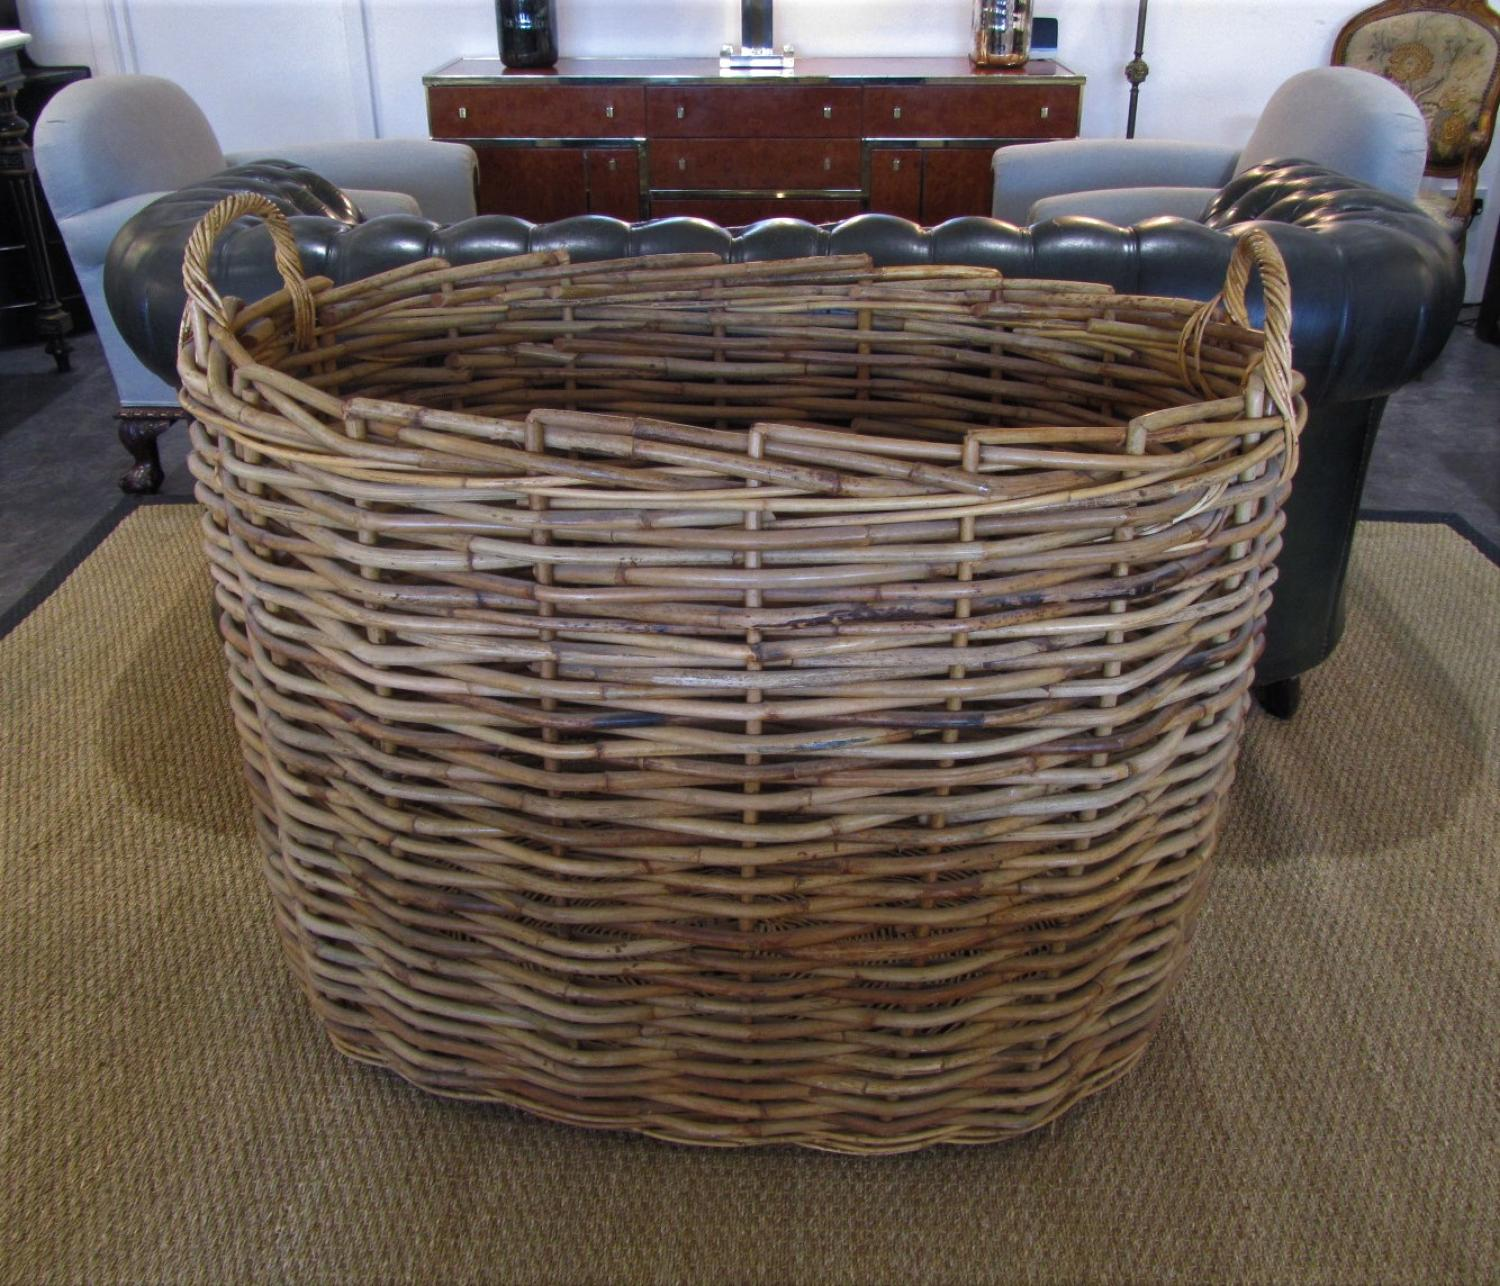 An Enormous wicker log basket